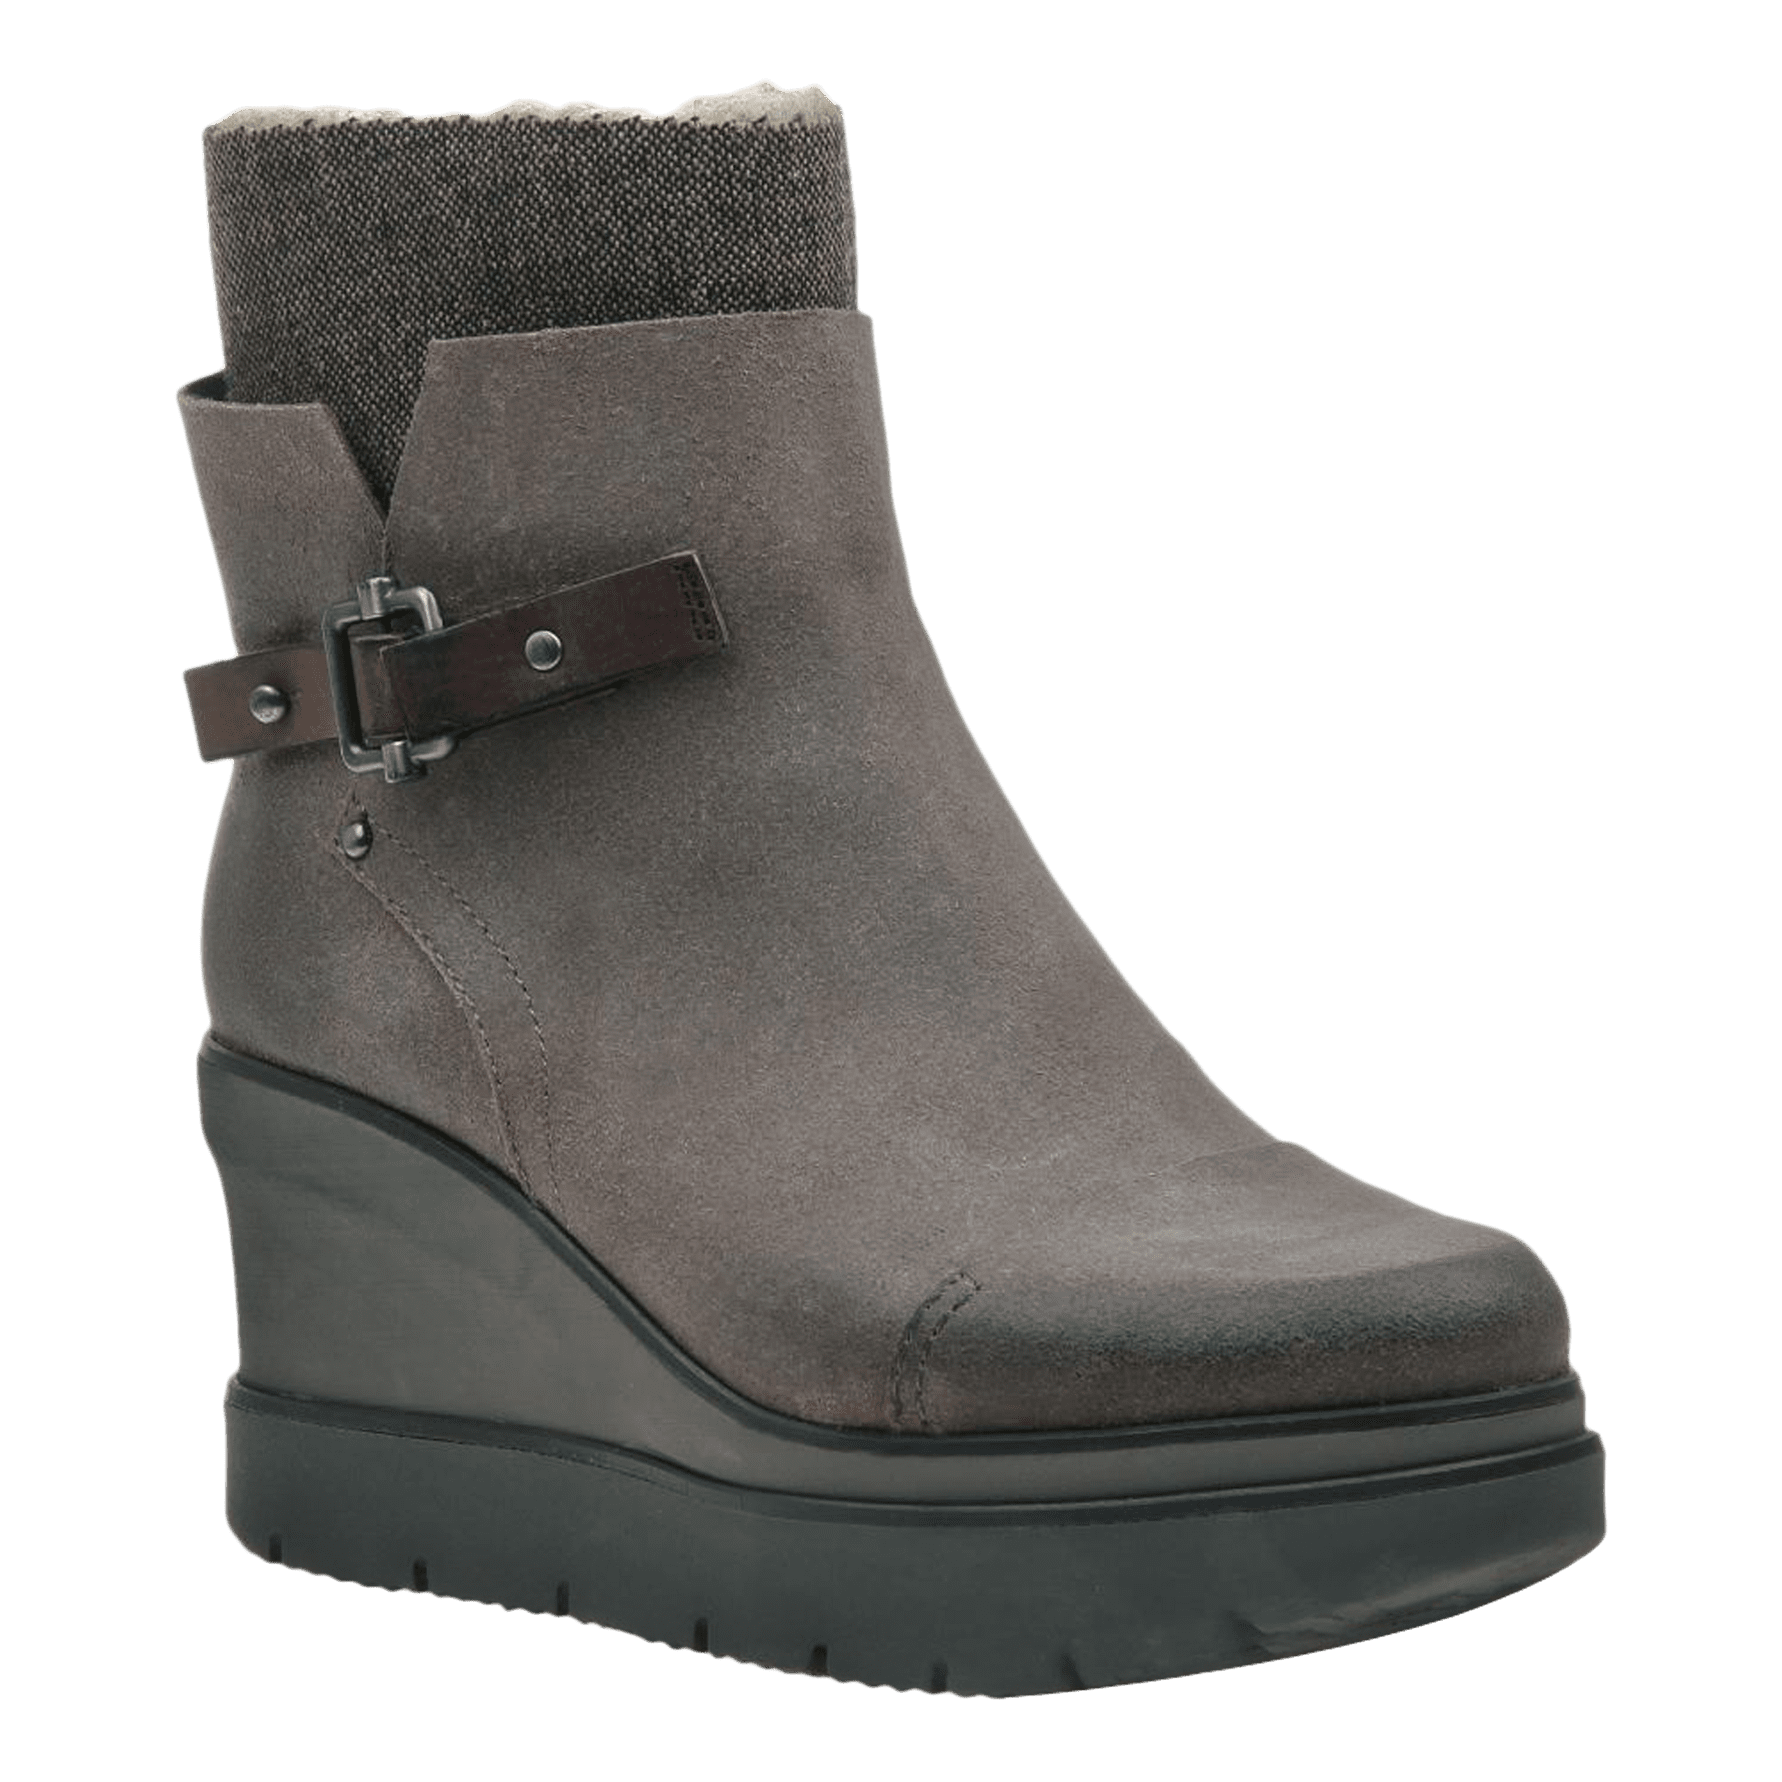 Womens ankle boot descend in charcoal grey